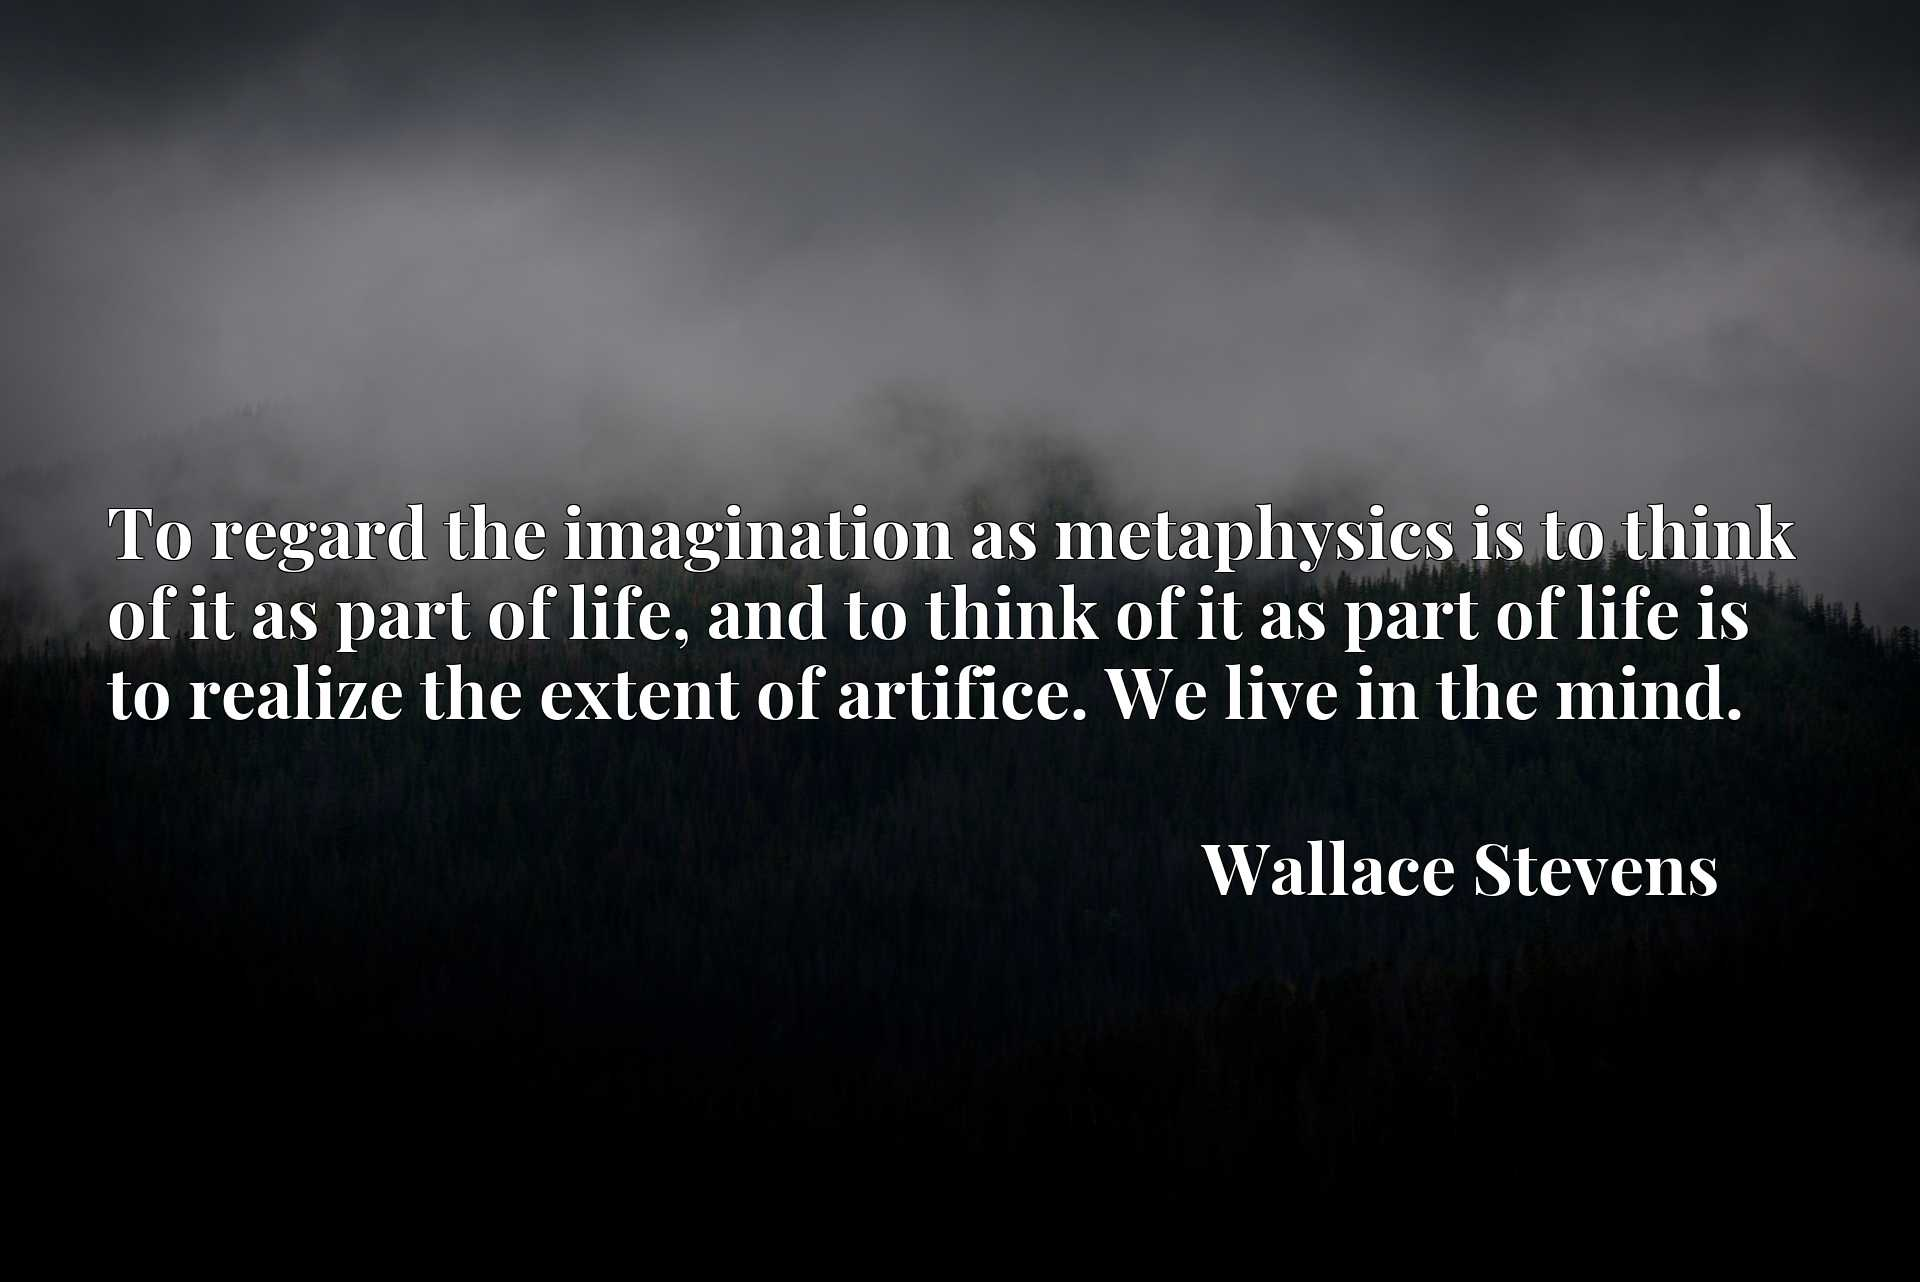 Quote Picture :To regard the imagination as metaphysics is to think of it as part of life, and to think of it as part of life is to realize the extent of artifice. We live in the mind.